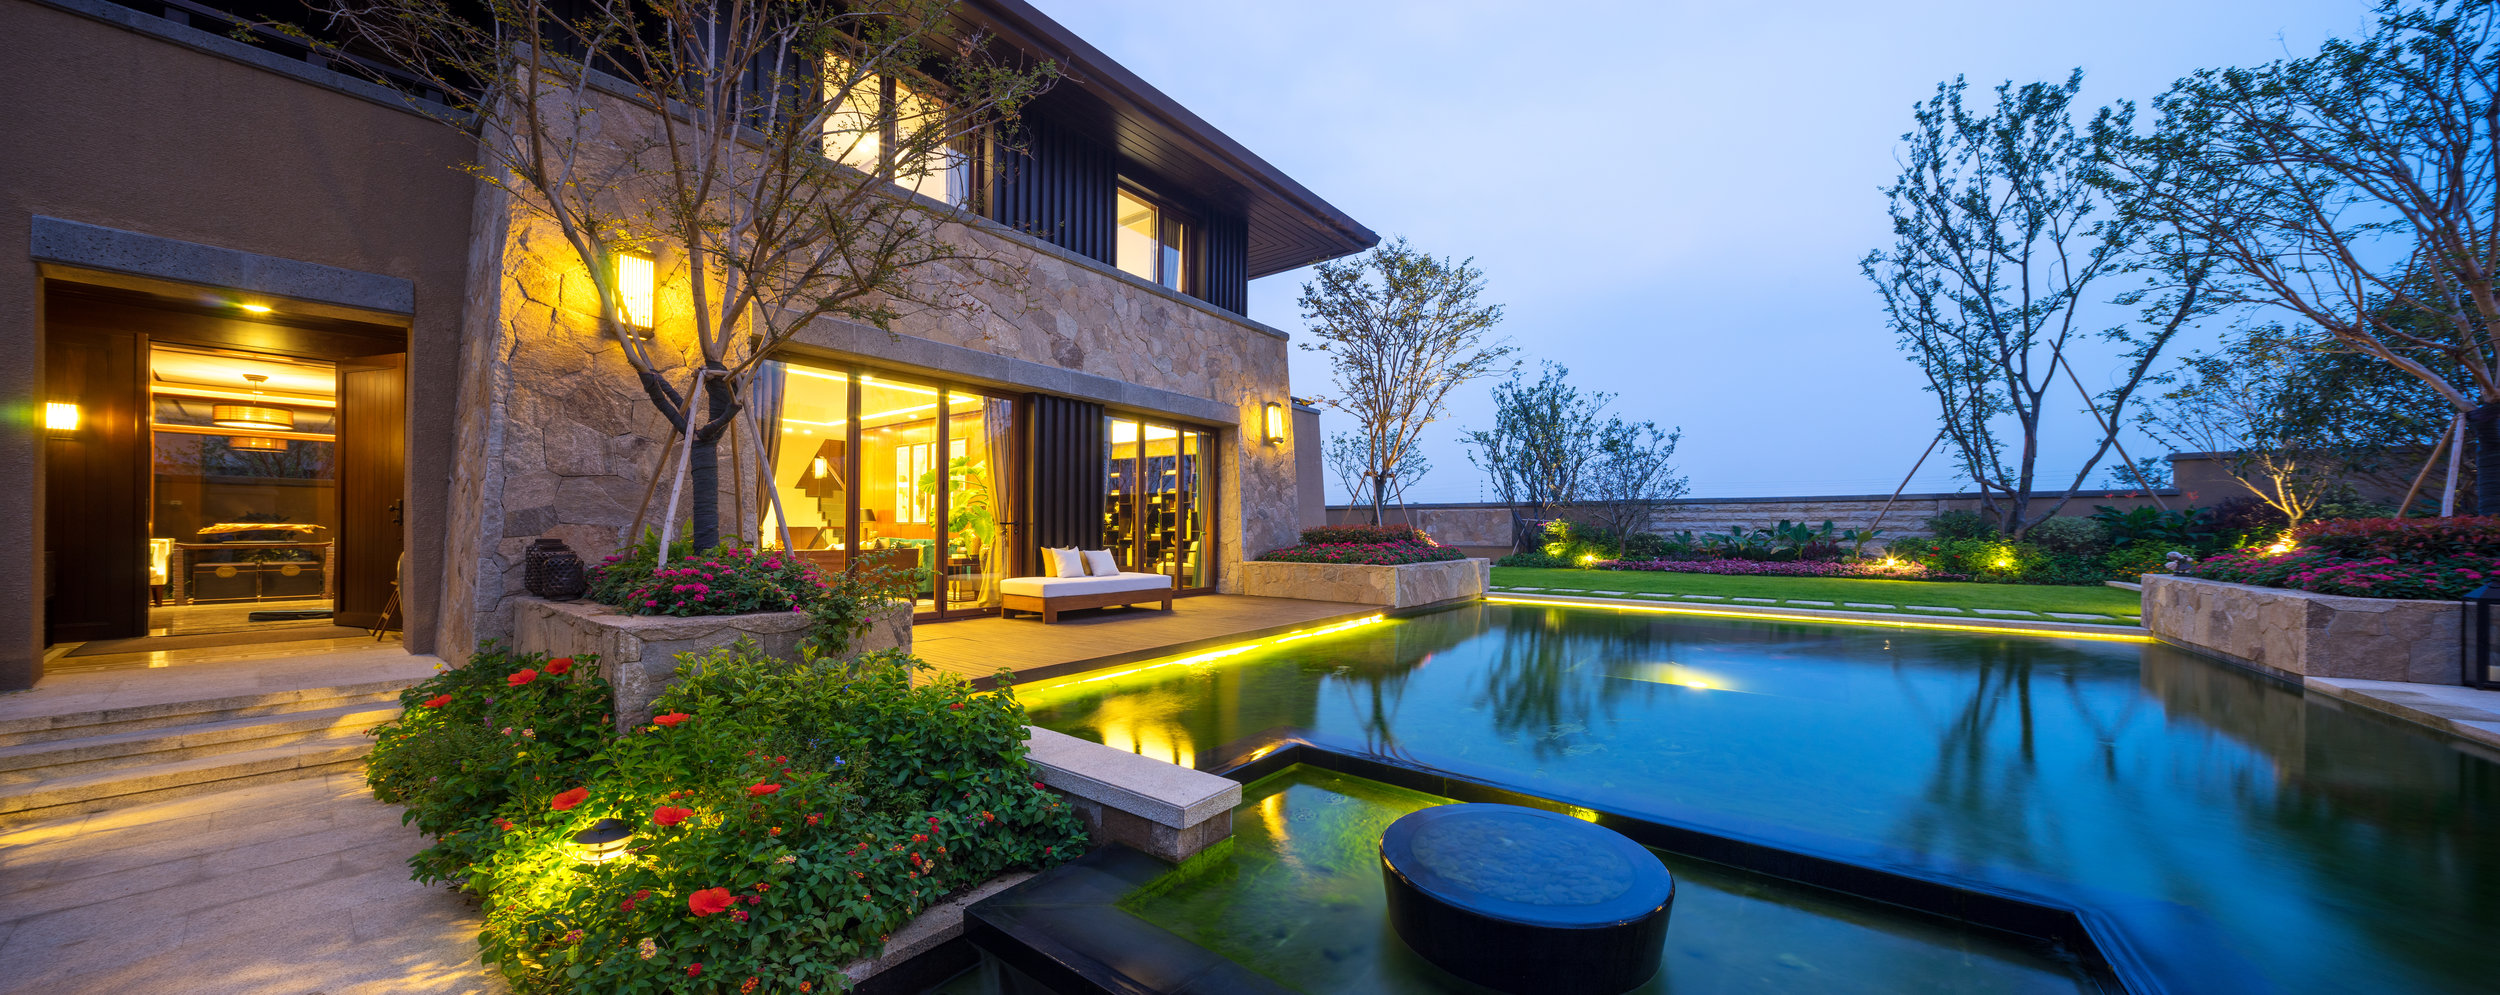 Get Your Client's Backyard Ready for Fall with a Proper Outdoor Lighting System